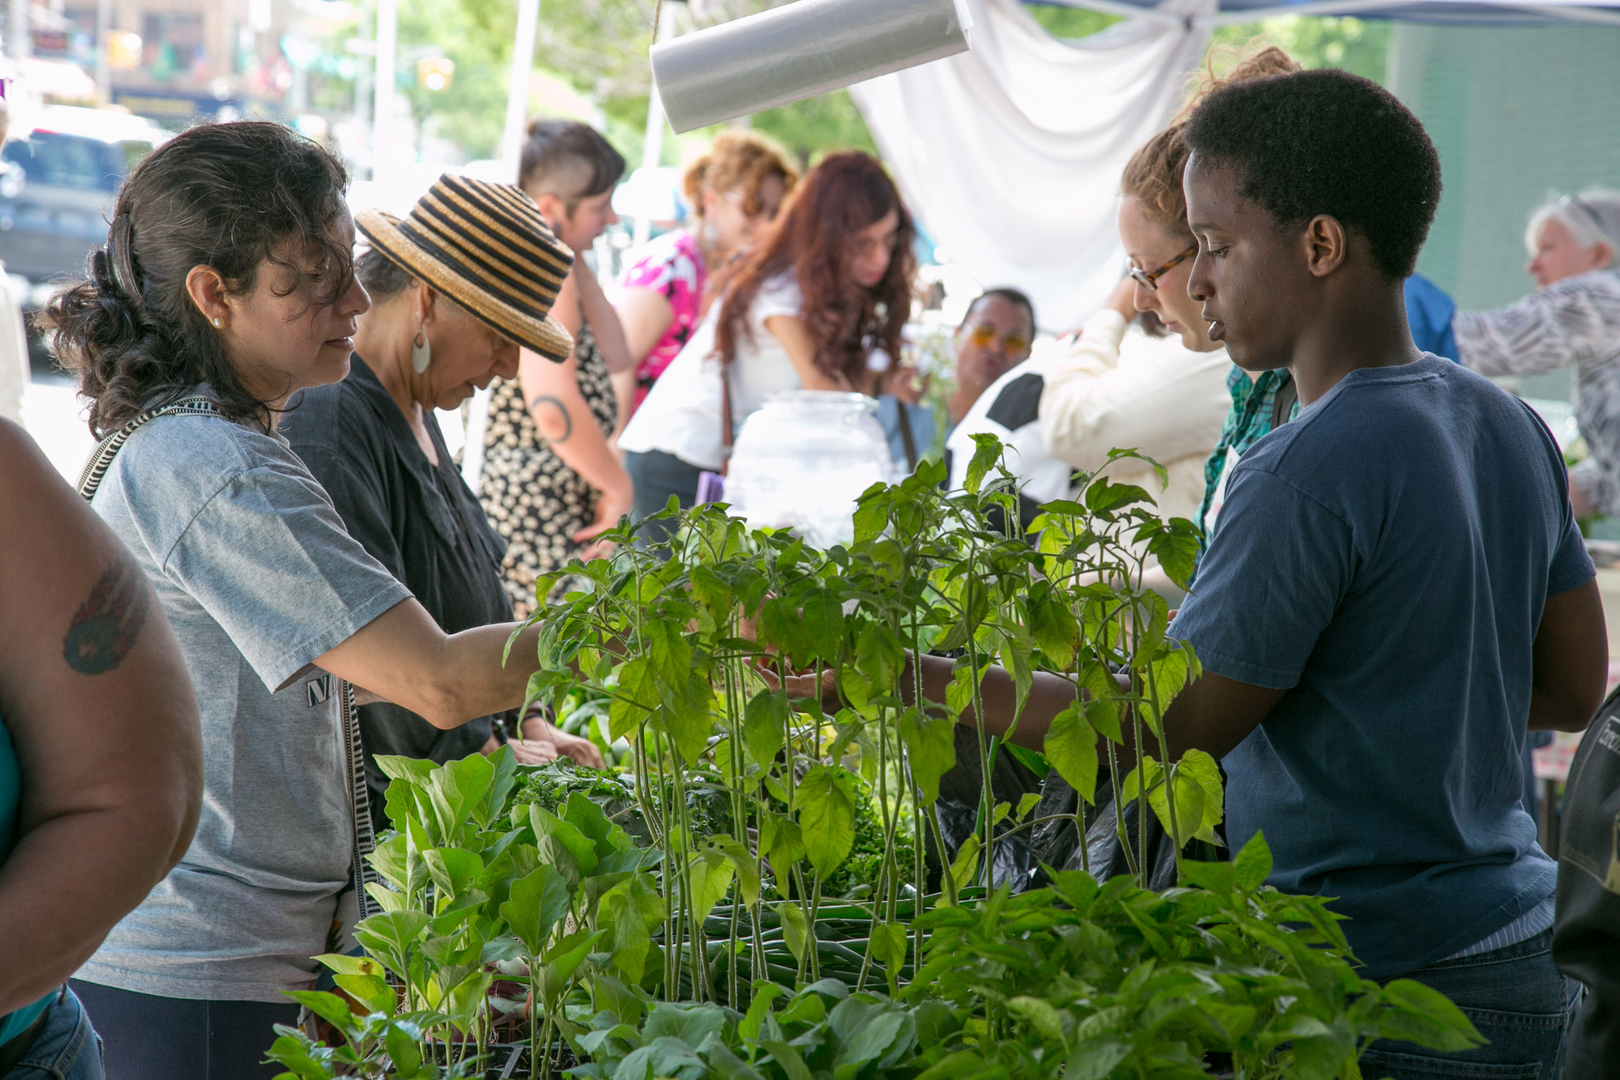 Photo credit: South Bronx Farmers Market